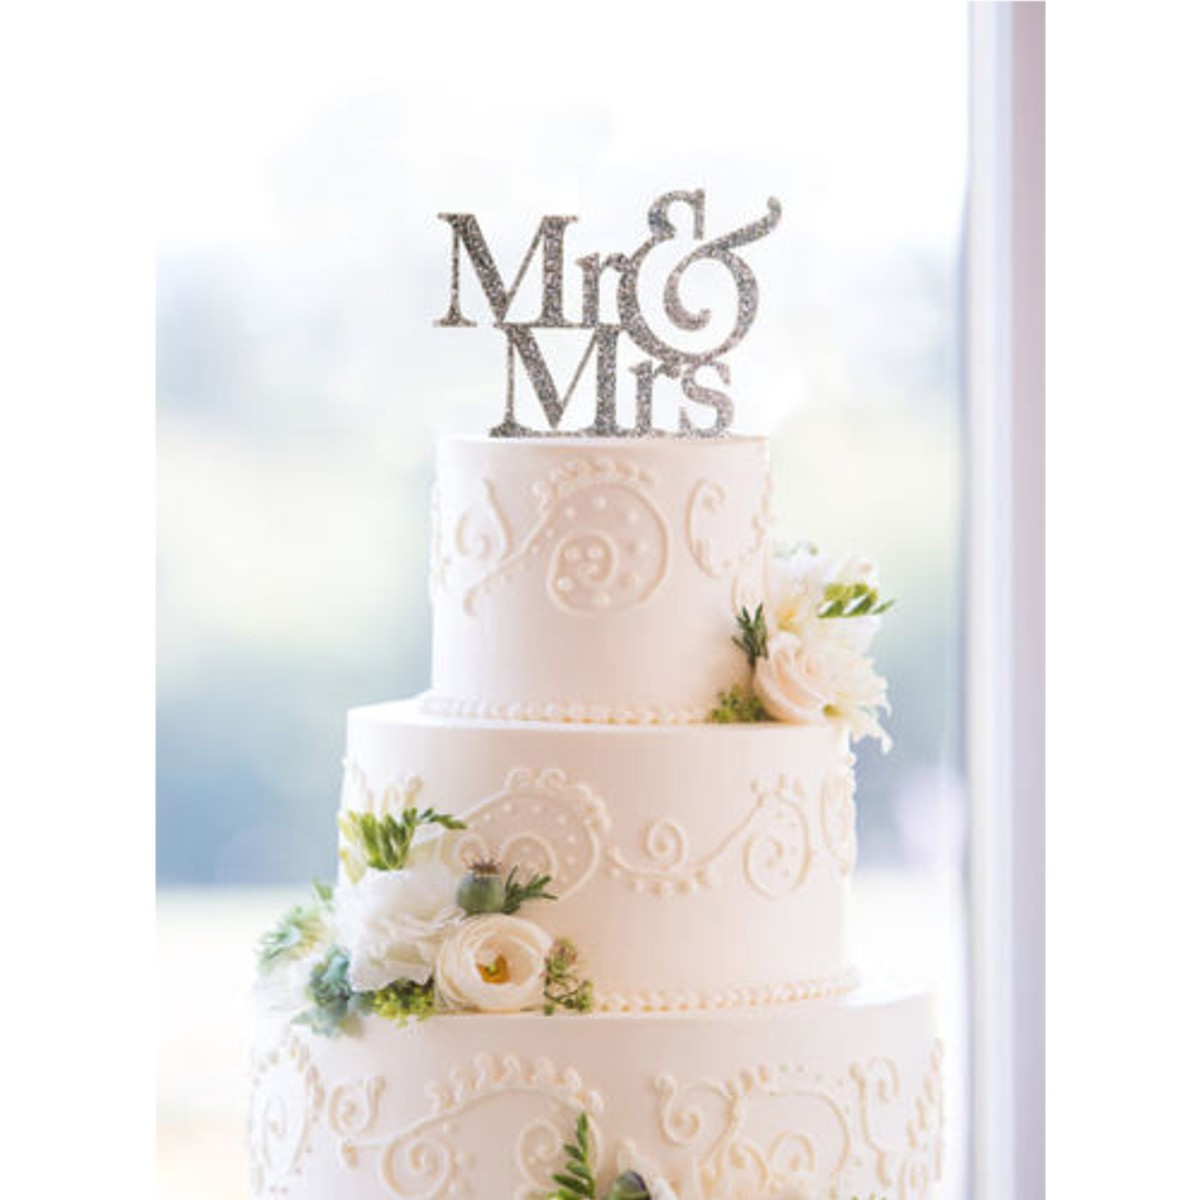 Mr&Mrs Romantic Silver Shiny Cake Topper Wedding Party Top